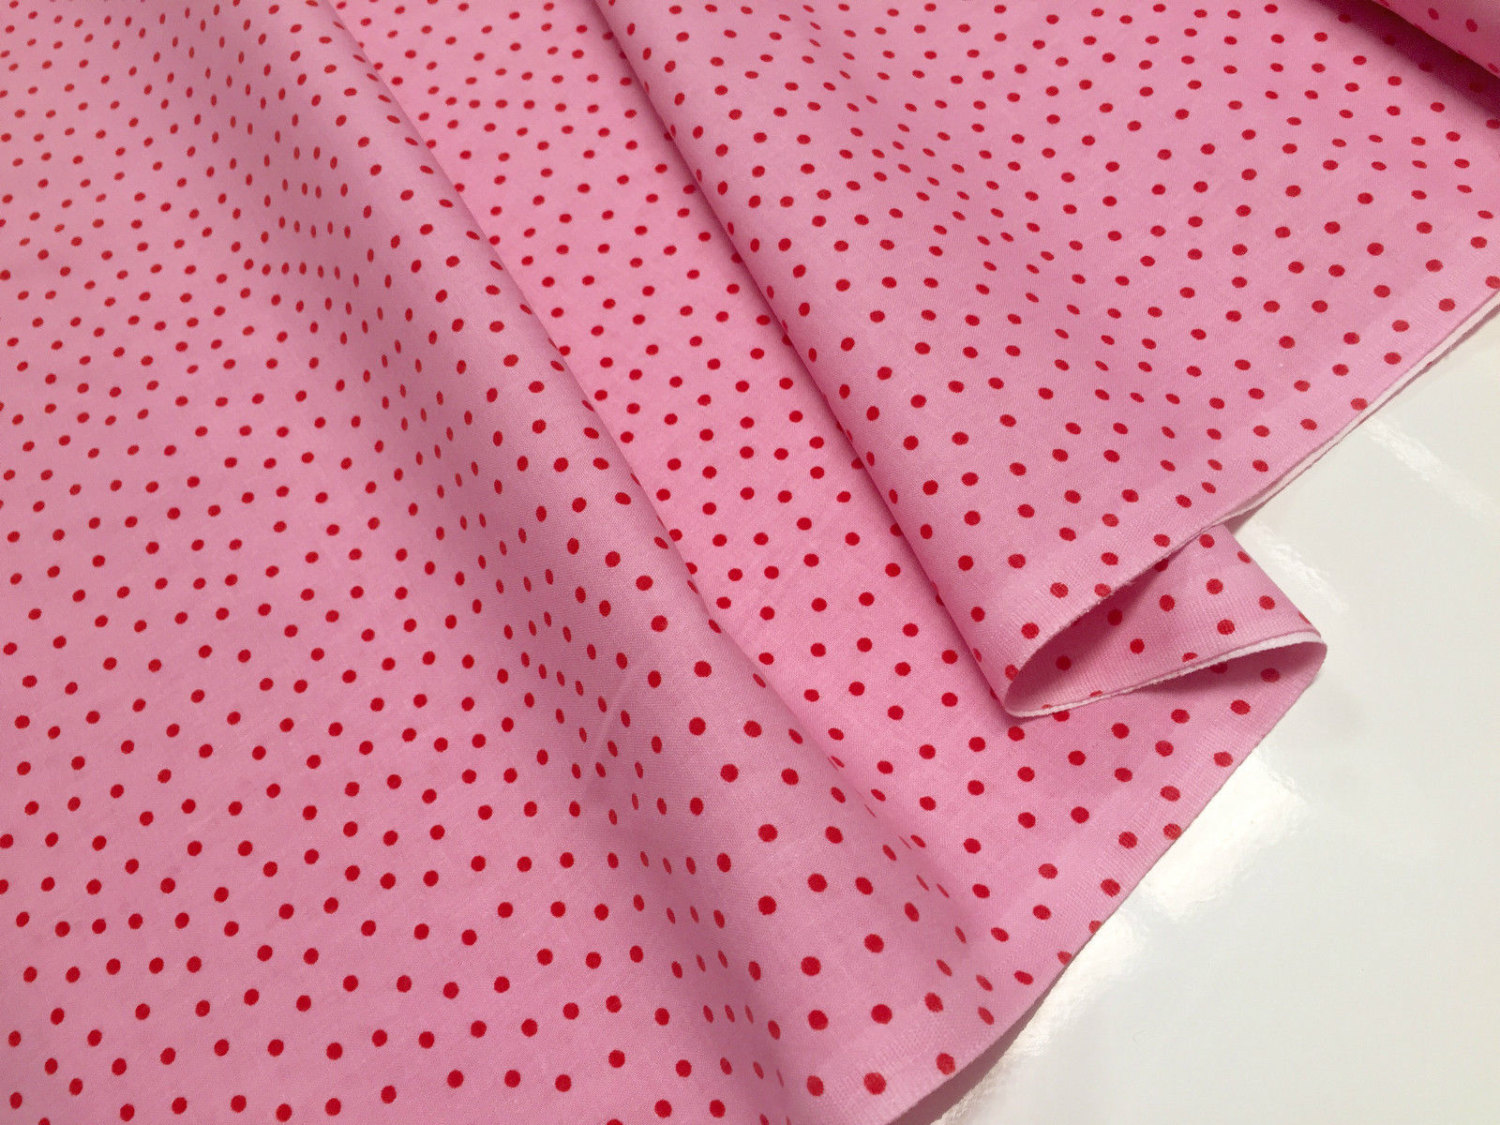 cath-kidston-ikea-rosali-100-cotton-fabric-material-floral-roses-150cm59-wide-pink-spots-594be8e91.jpg